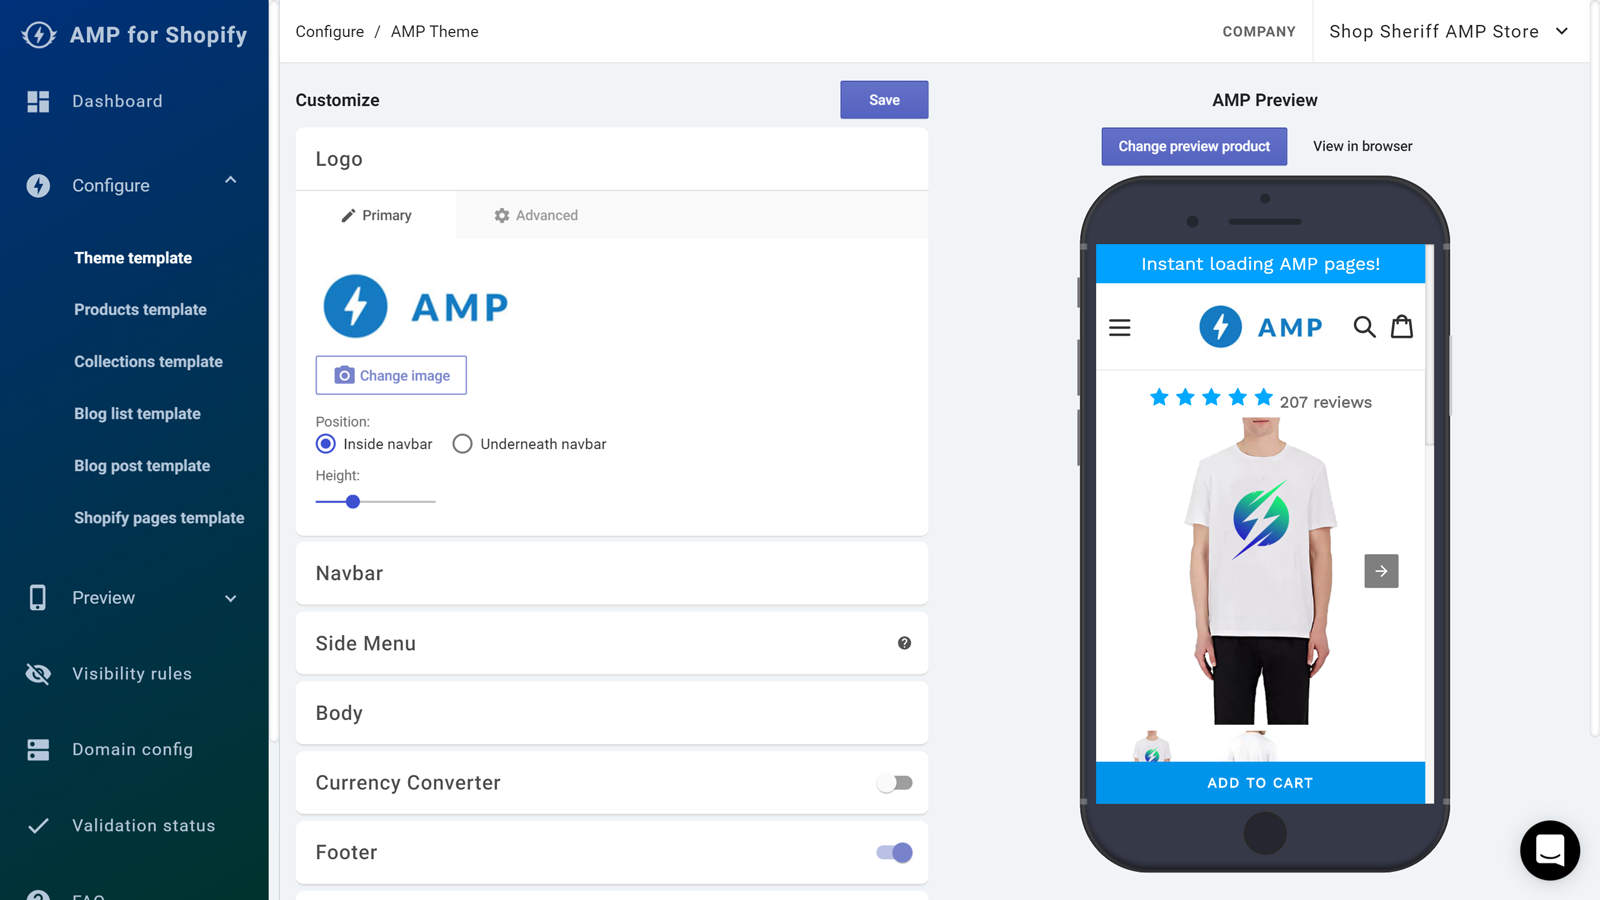 Use AMP apps to make your Shopify store faster